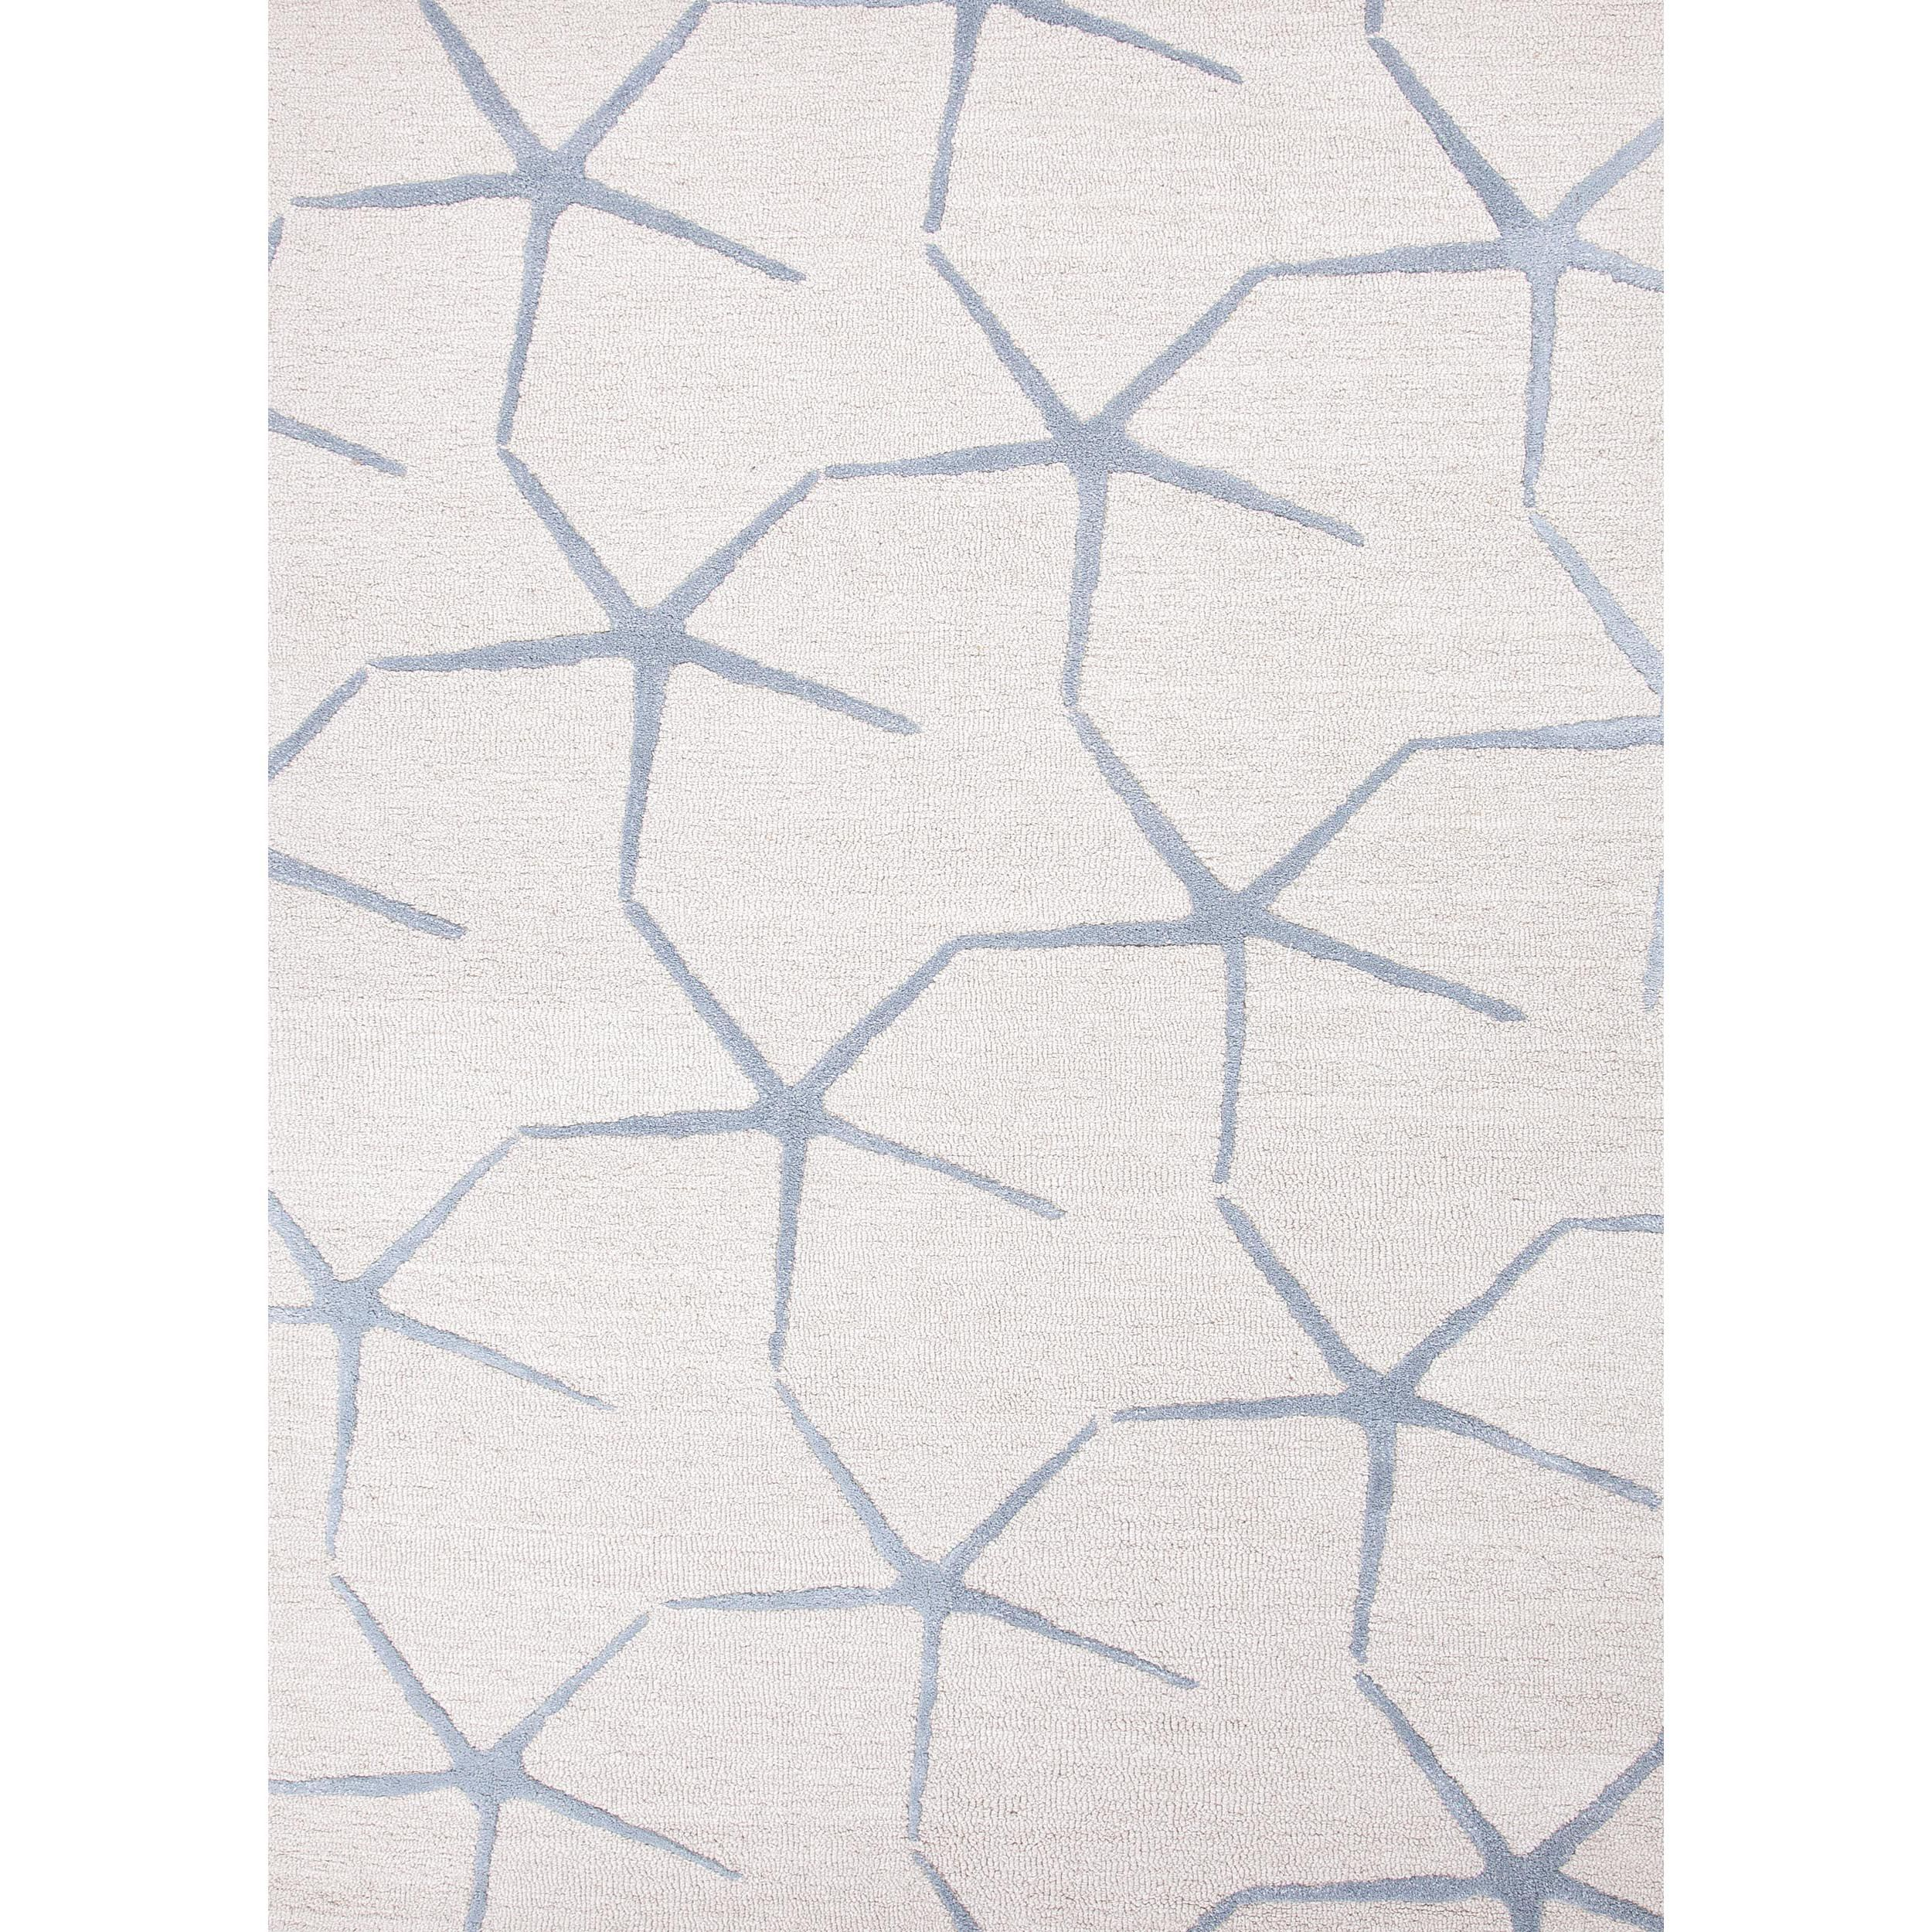 Impressions Transitional Ivory/ White Wool/ Tufted Rug